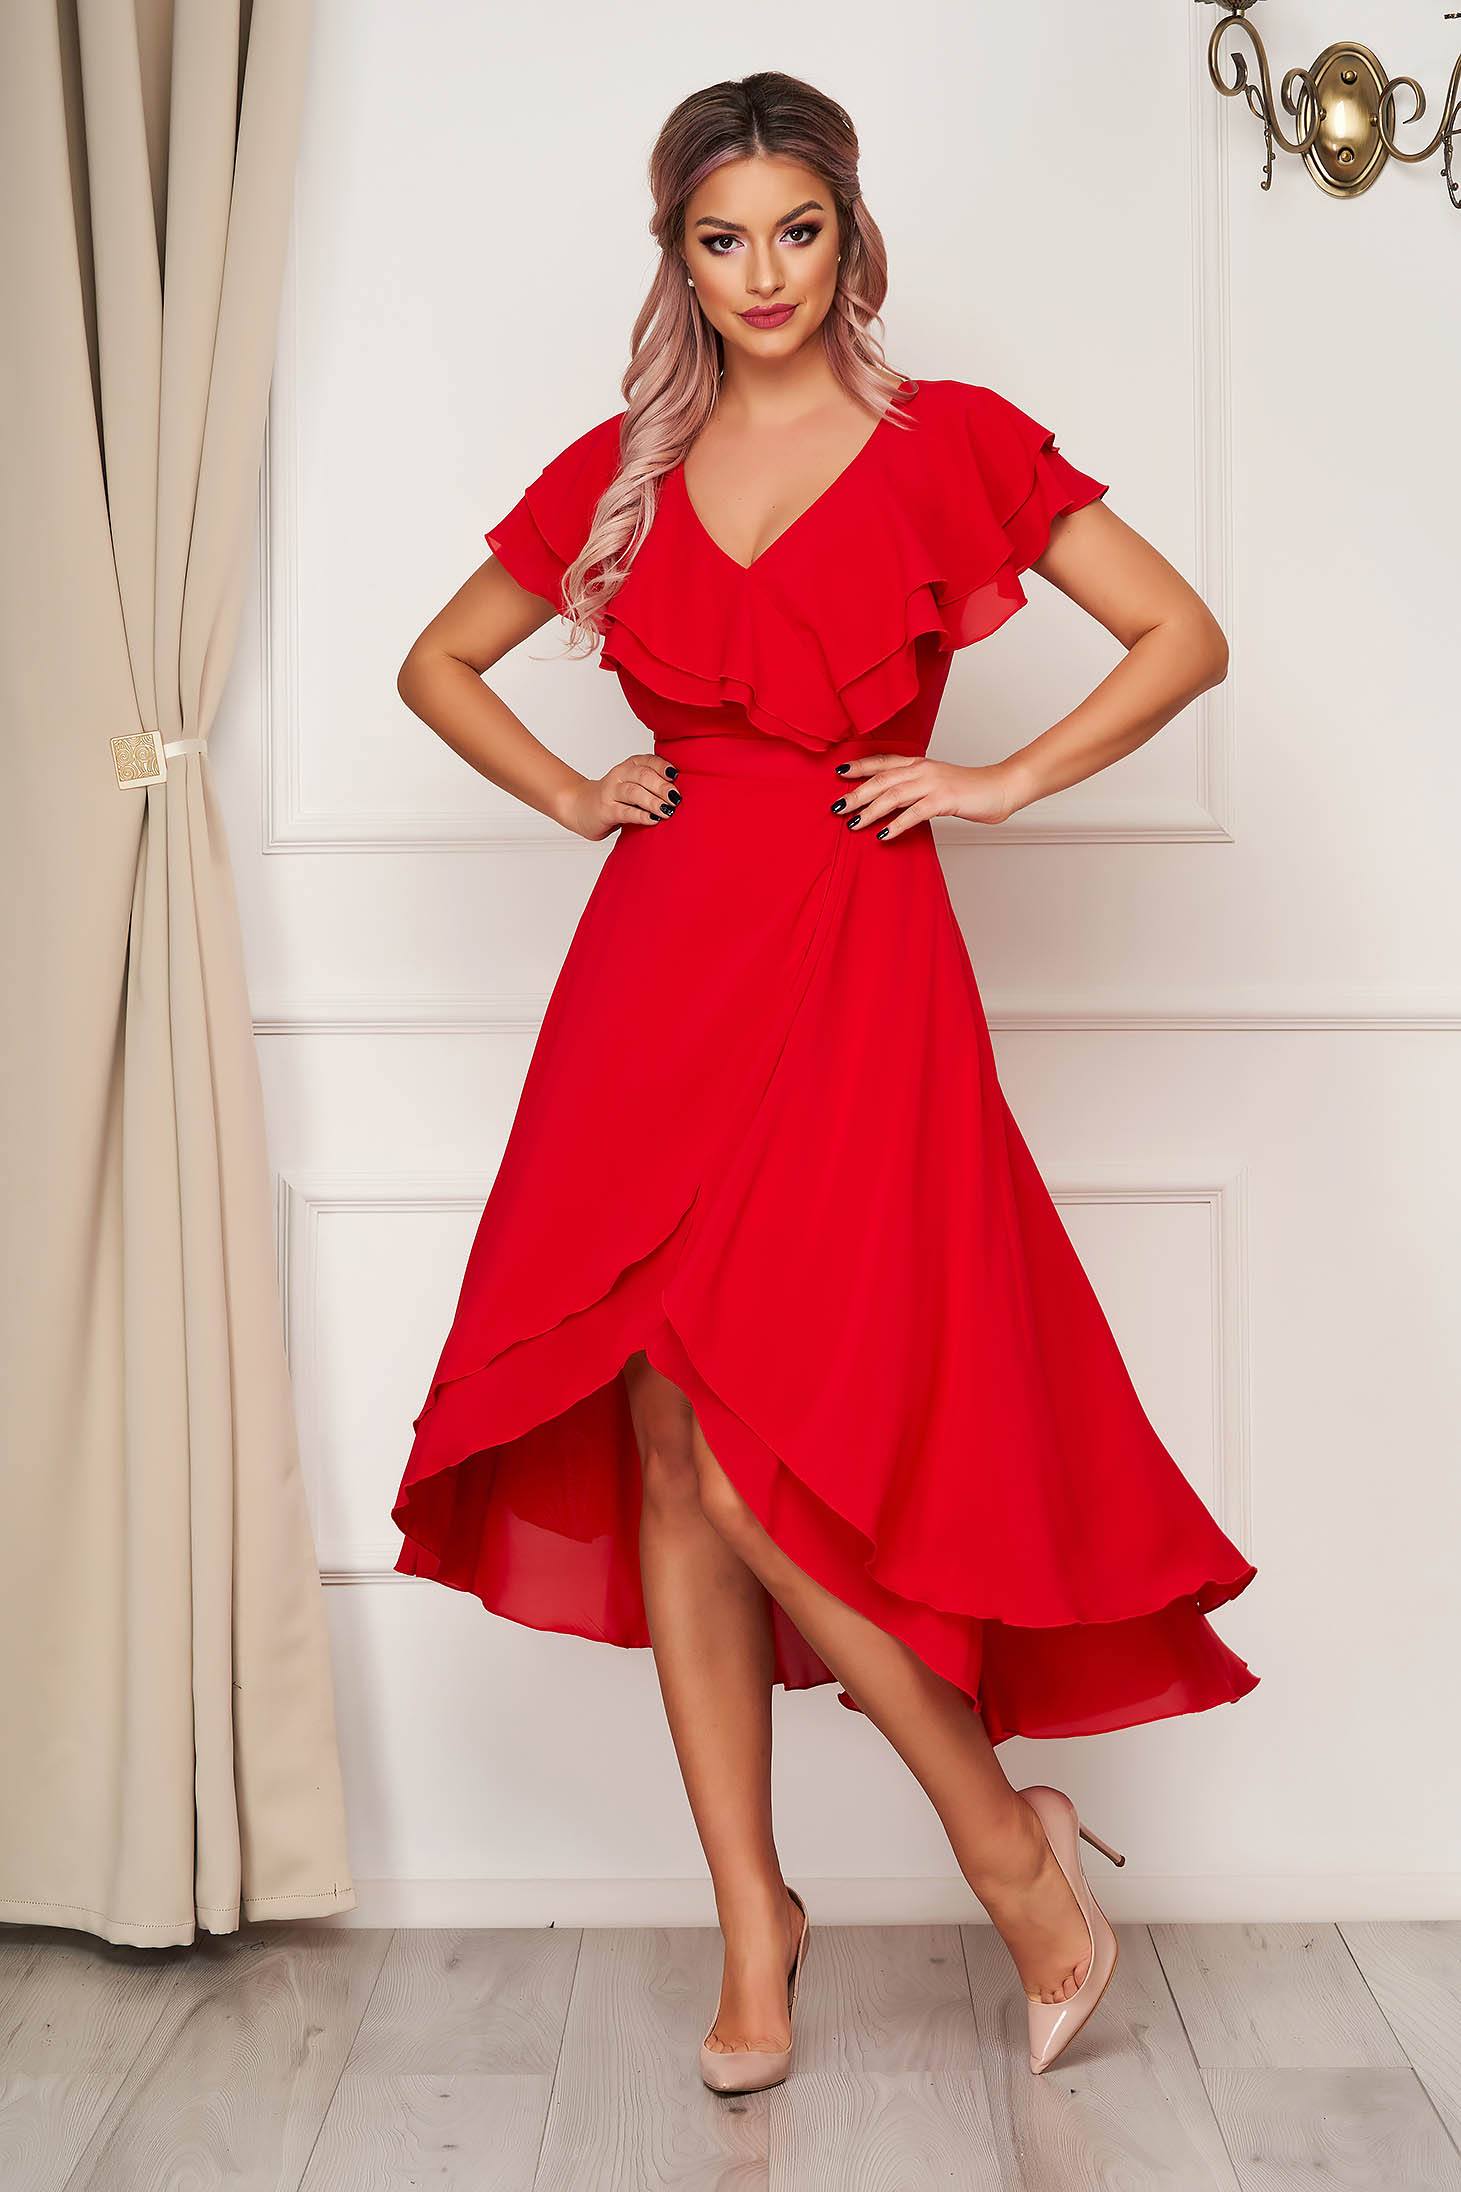 Dress StarShinerS red long occasional from veil fabric with ruffle details